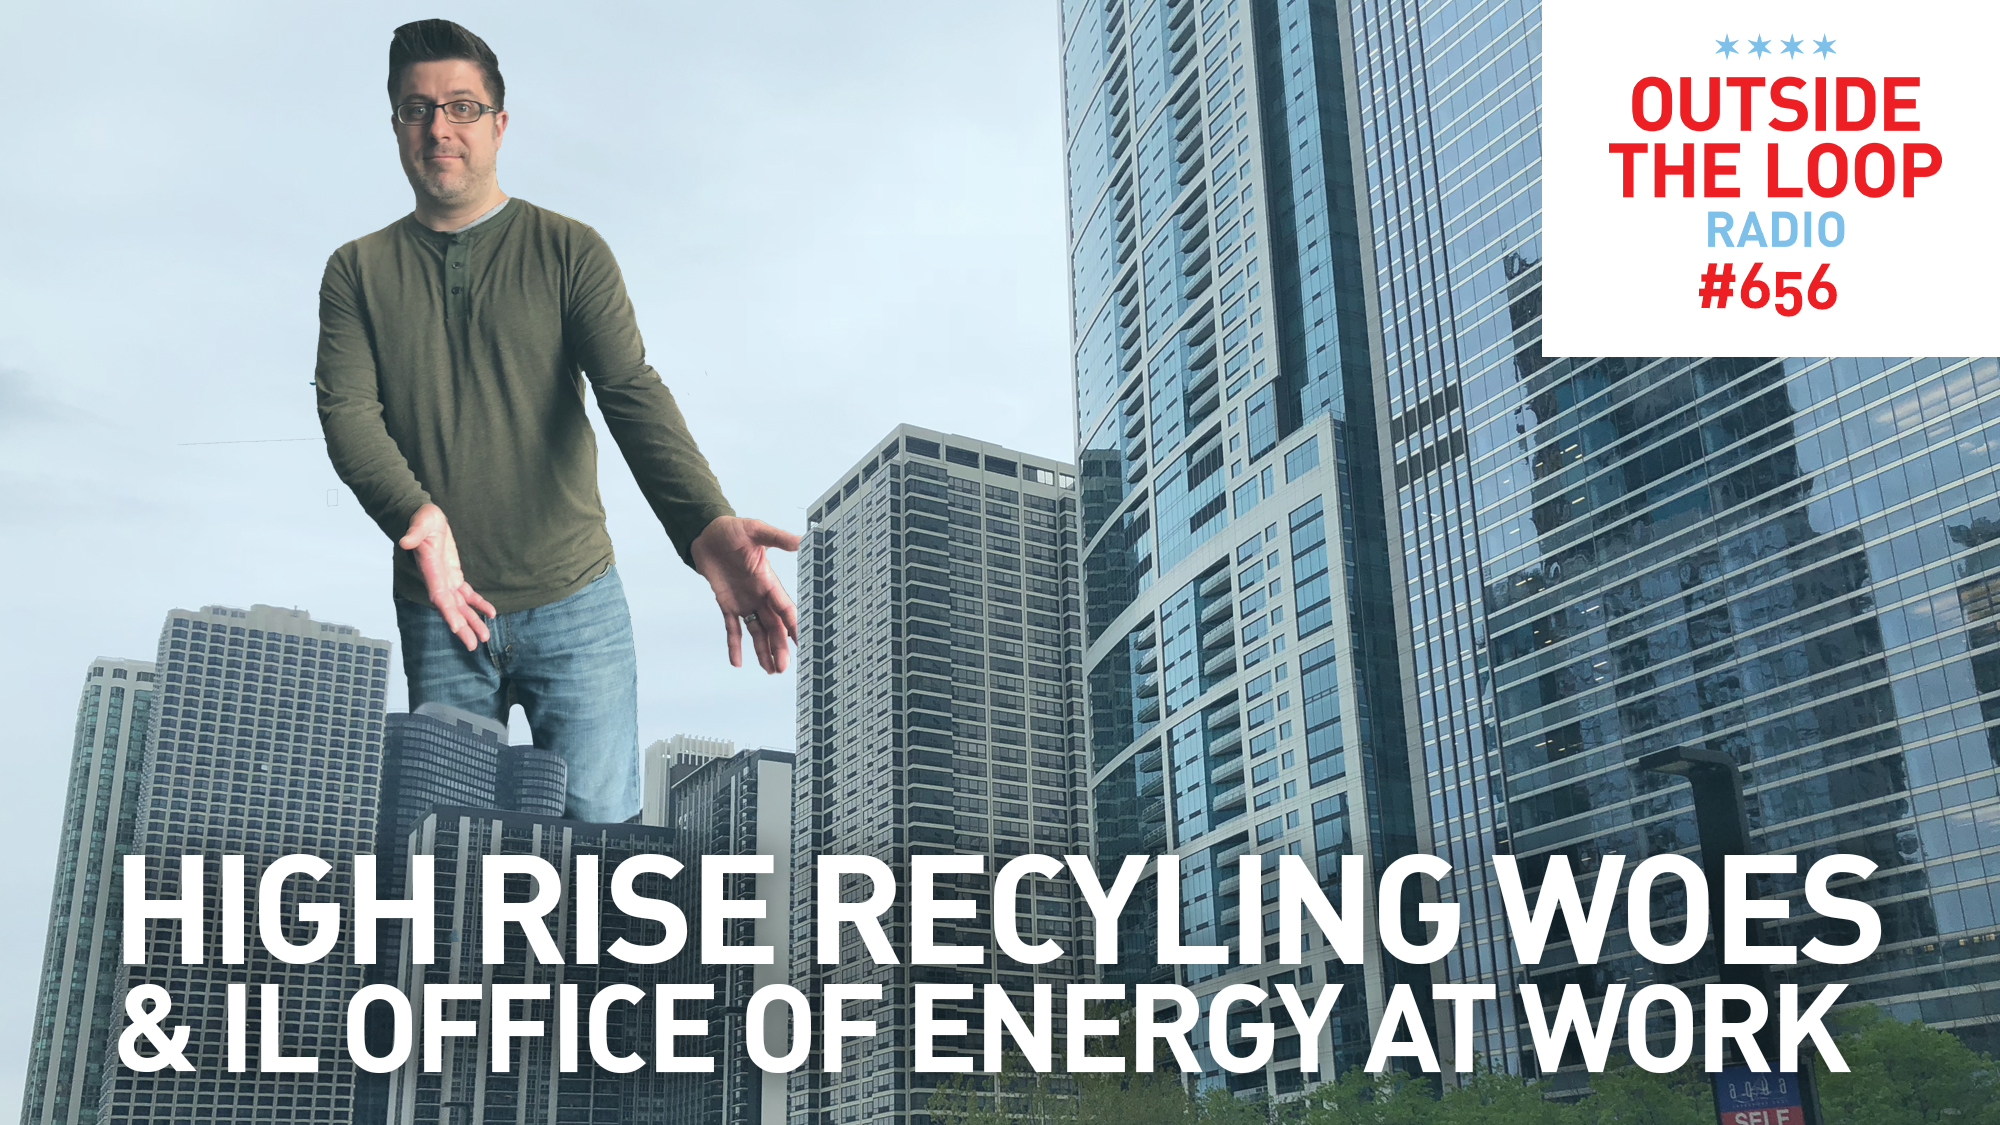 Mike Stephen wonders why so few Chicago high rise buildings recycle.